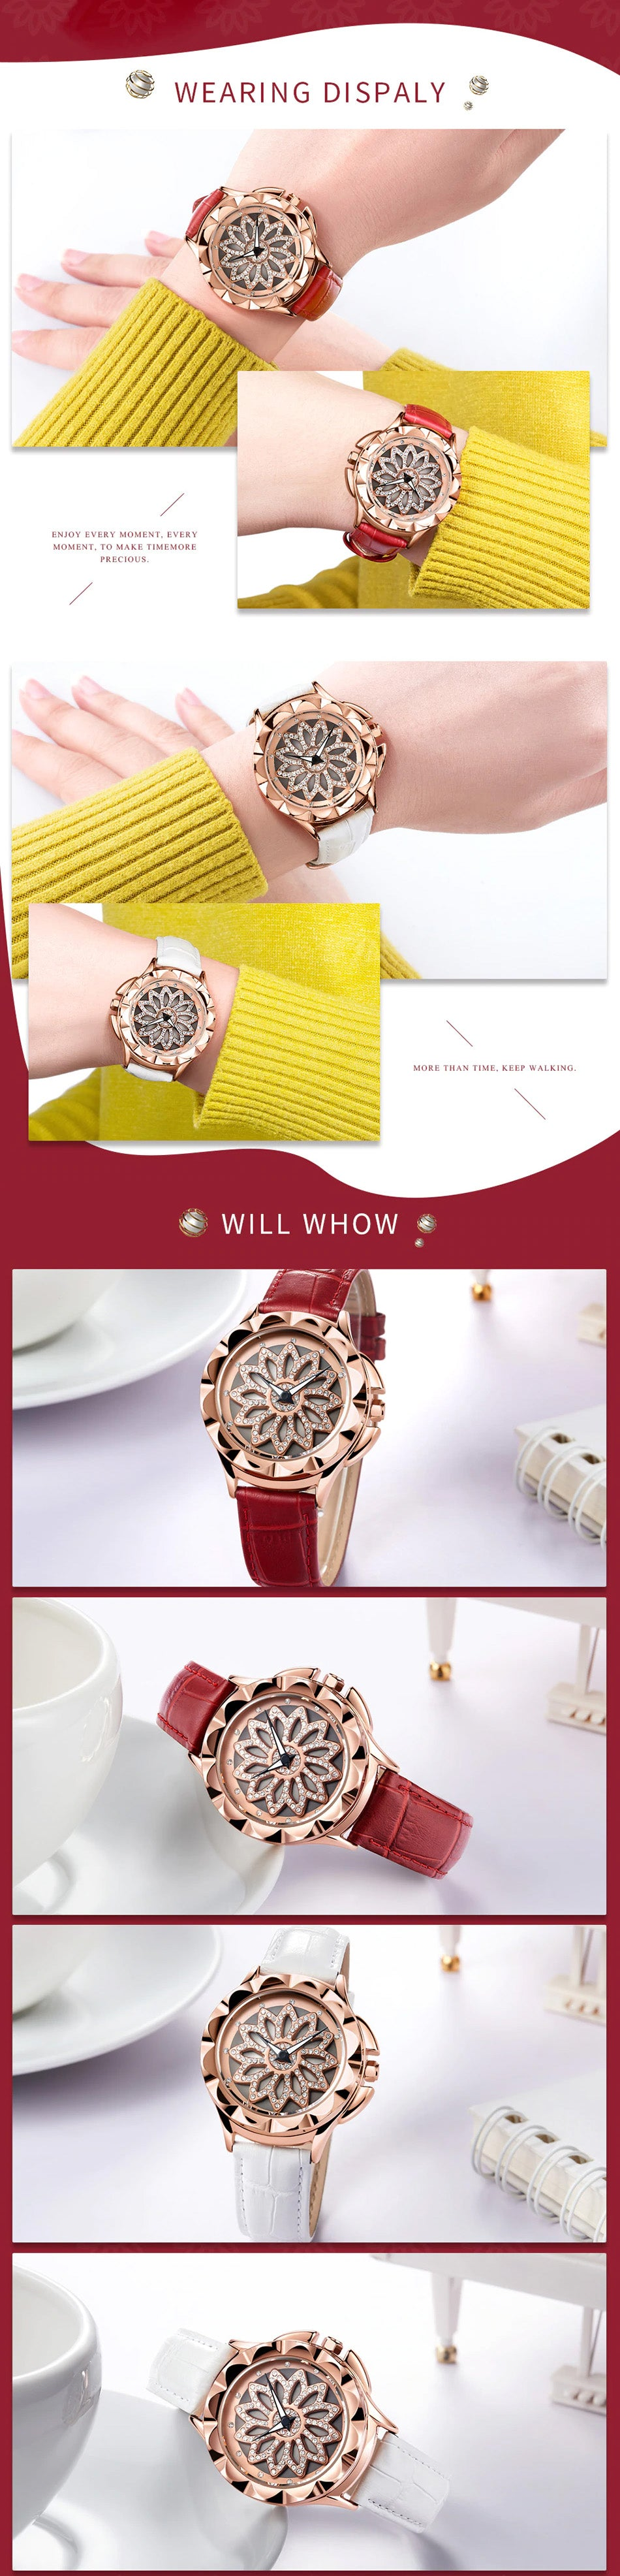 Spriou Leather Band, XIGO eShop, XIGO Timepieces, xigoeshop, XIGO (HK) Retail Company